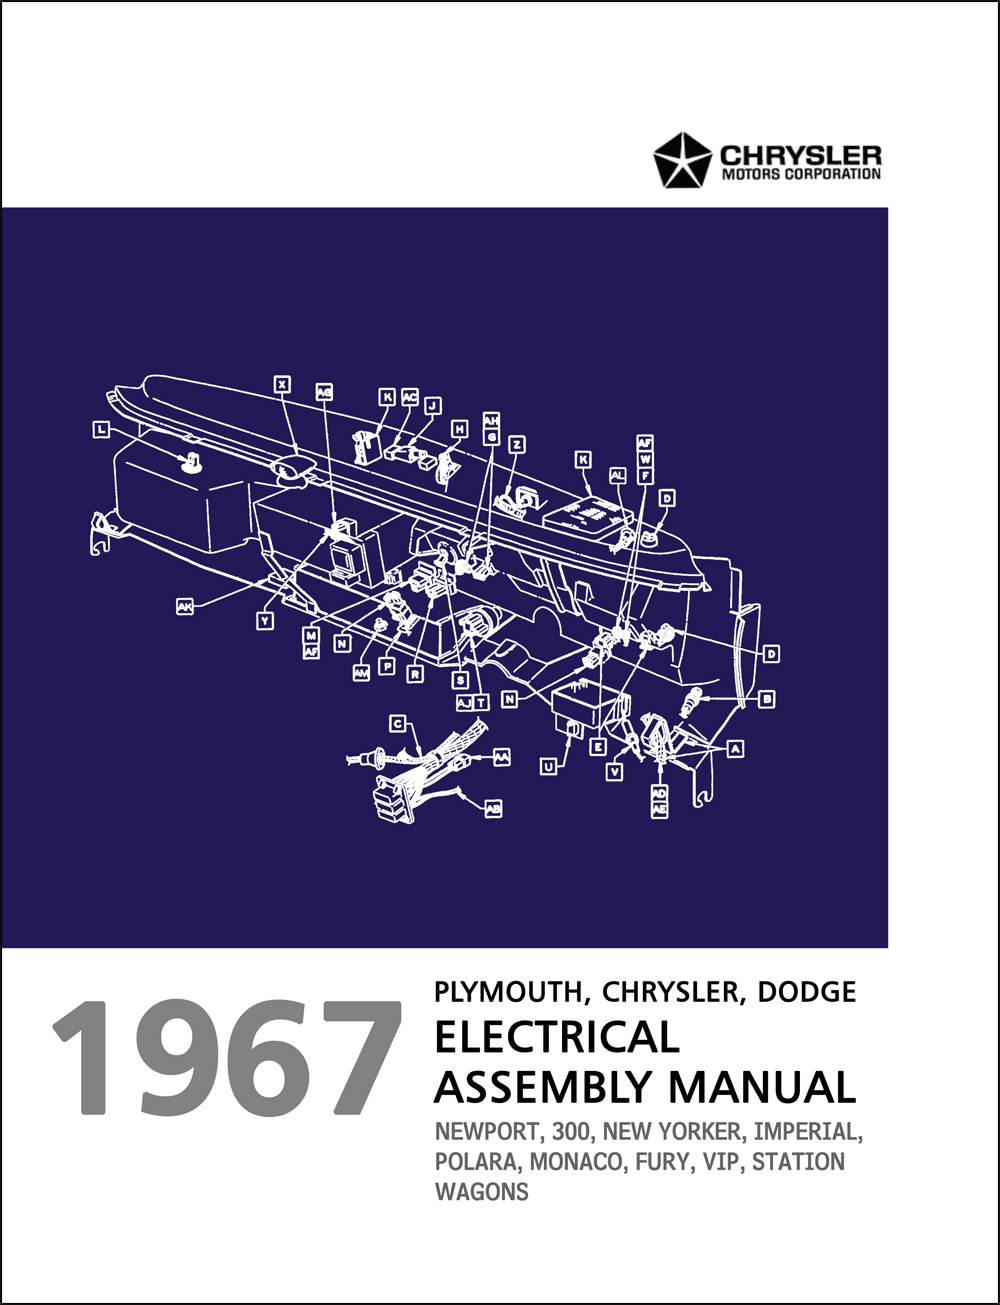 medium resolution of 1967 chrysler dodge and plymouth big car electrical assembly manual reprint